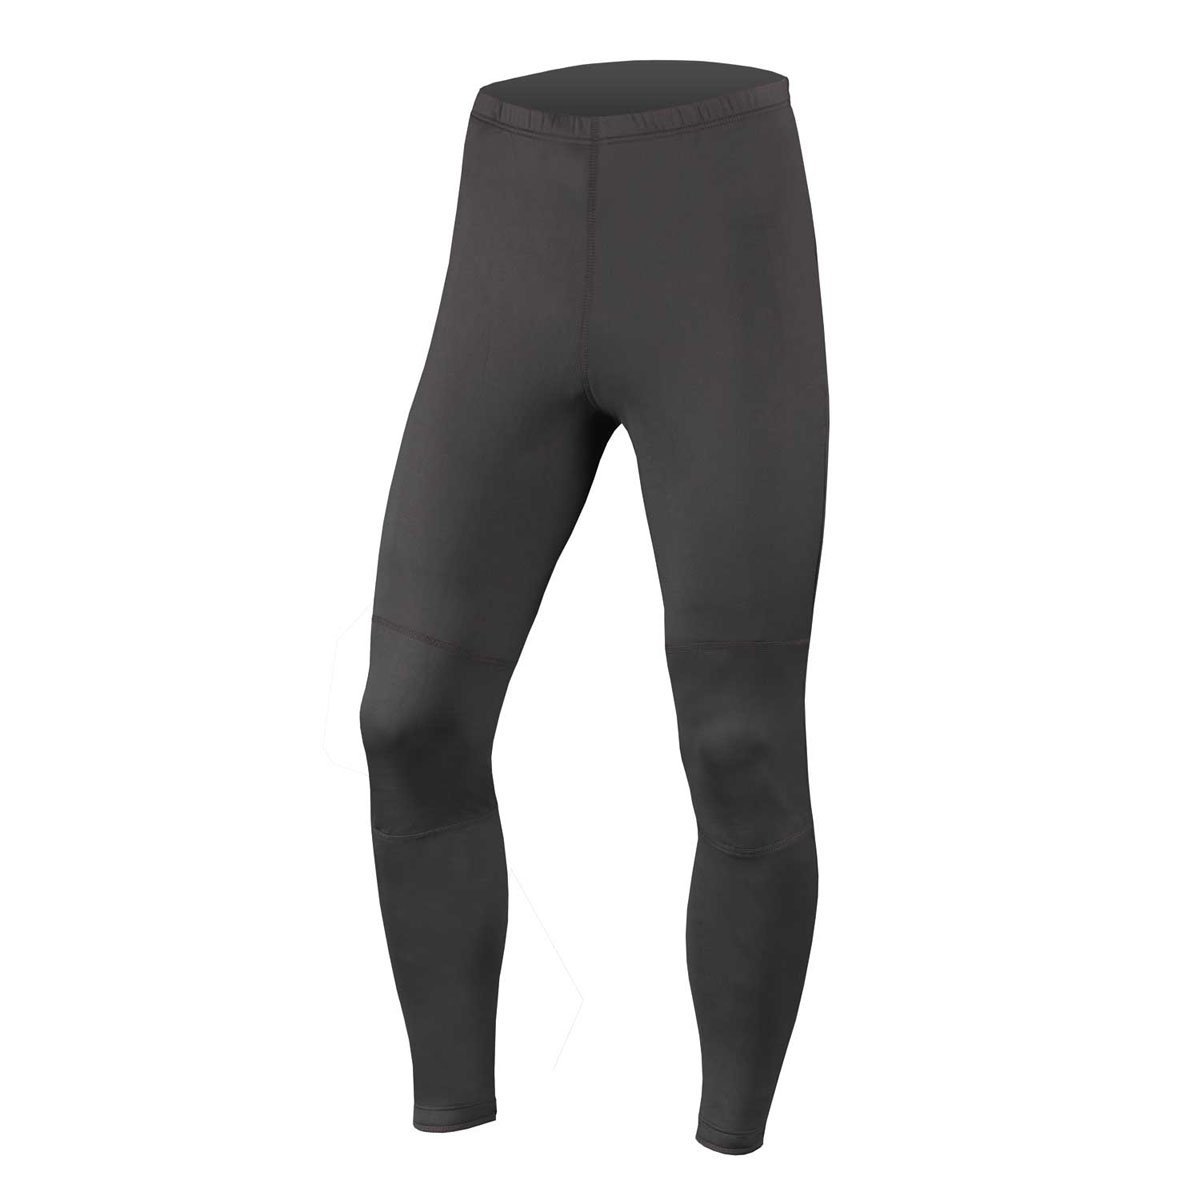 2c3a80158e848 Cheap Endura Tights, find Endura Tights deals on line at Alibaba.com